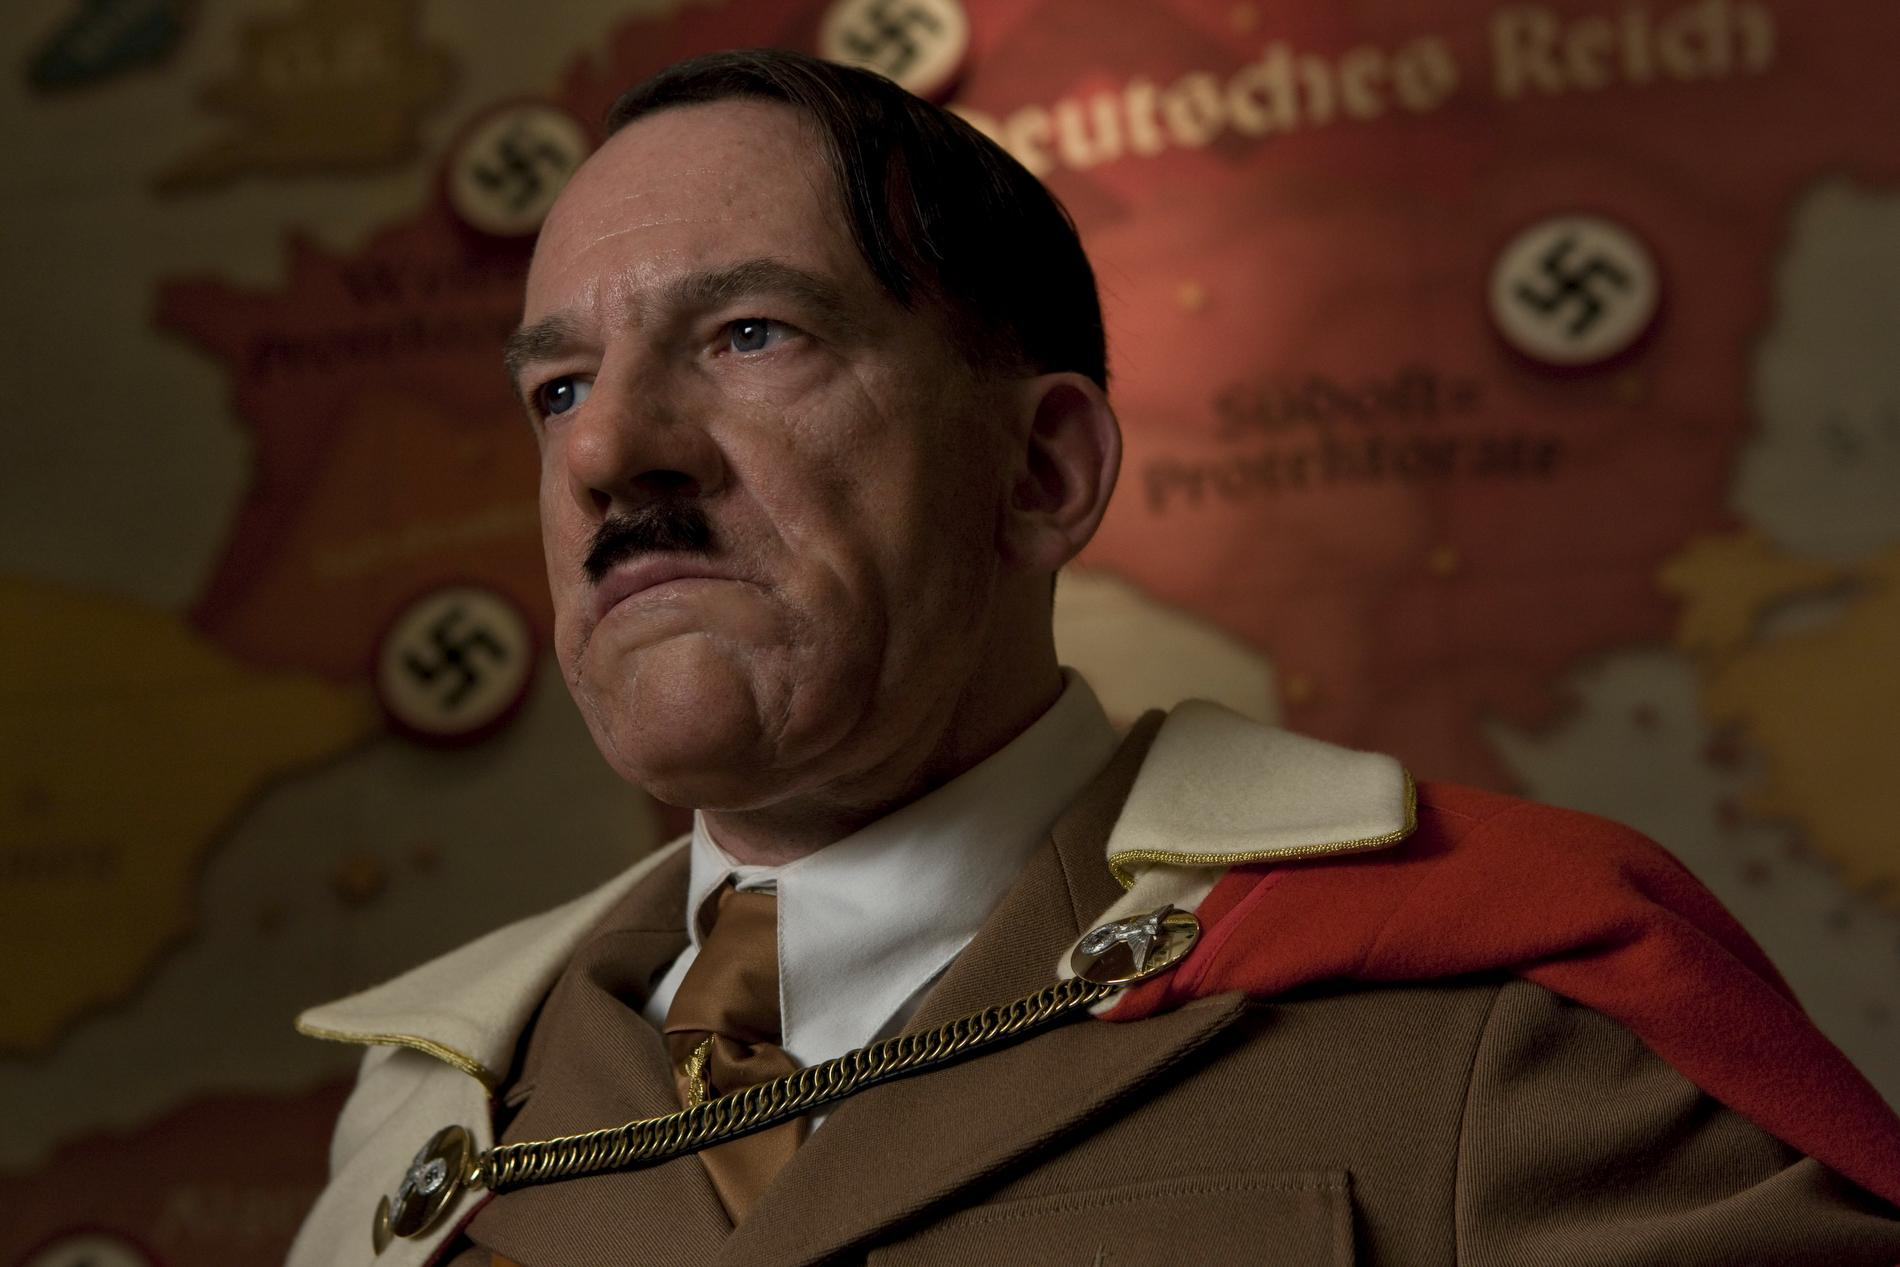 The philosophical problem of killing baby Hitler, explained